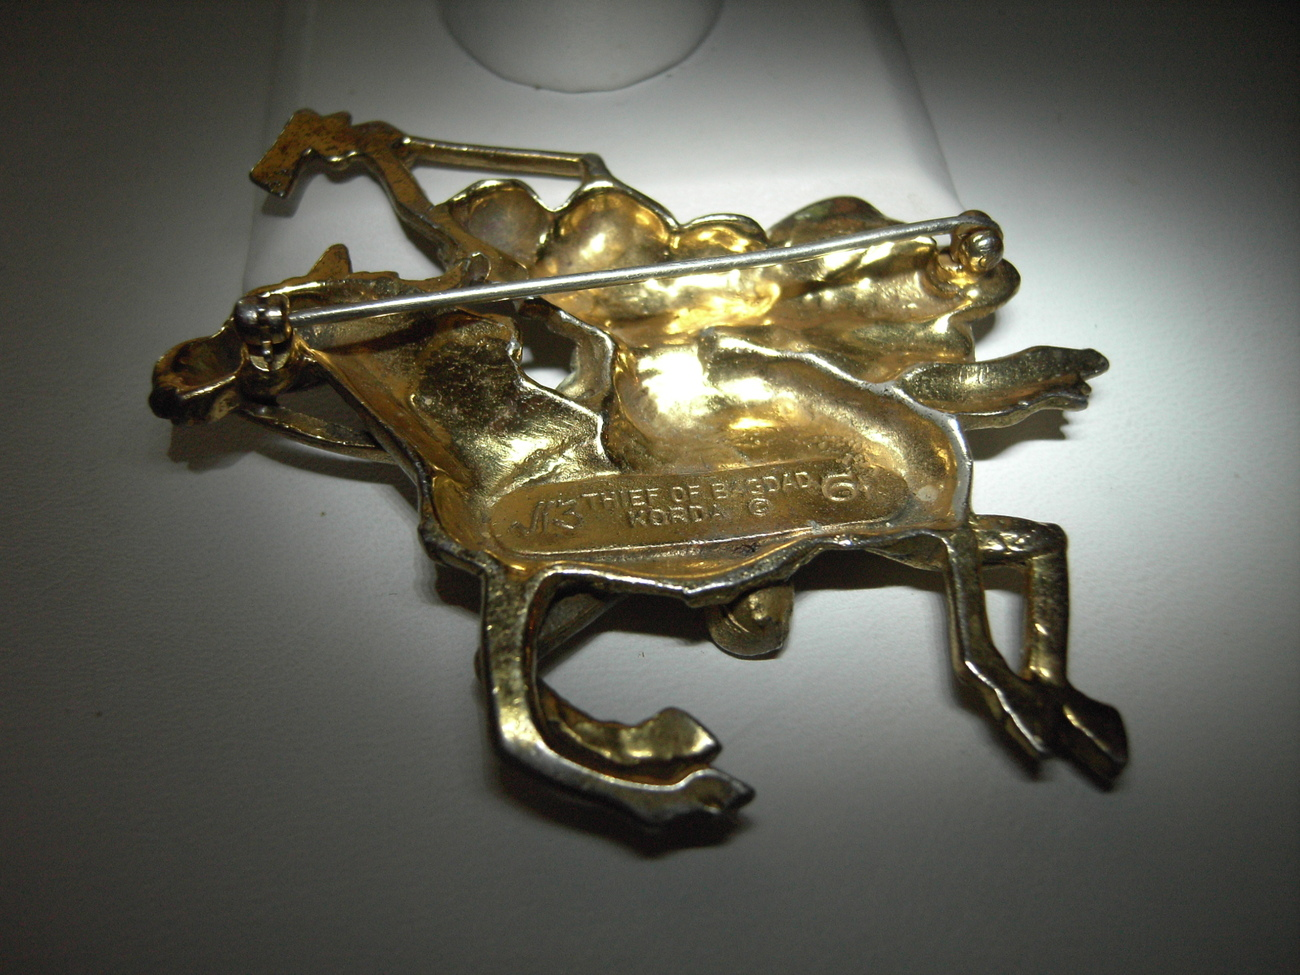 Korda Thief of Bagdad Cloaked Rider Brooch 1960's